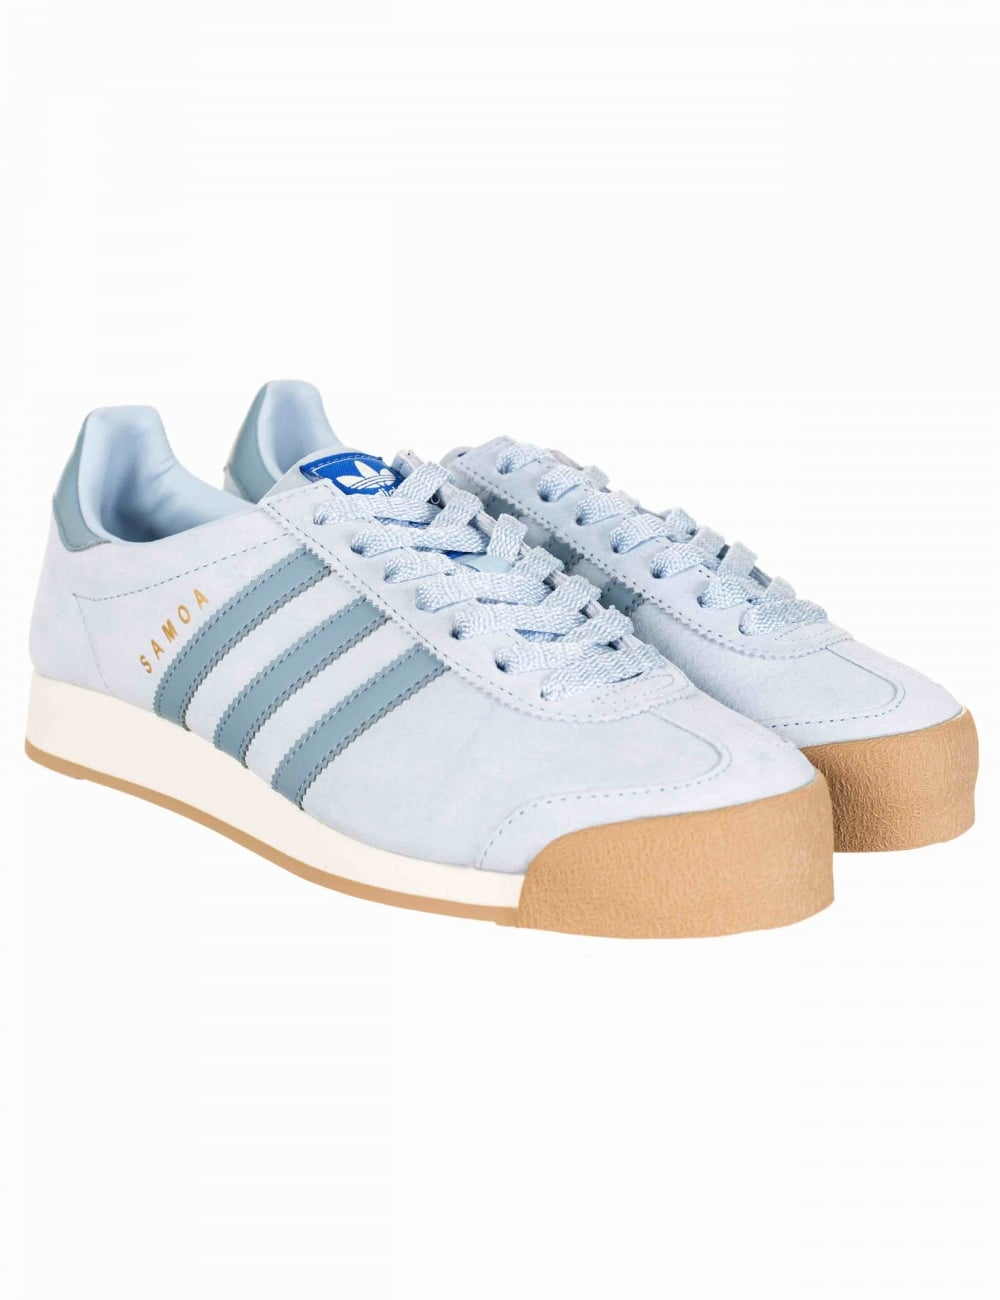 Samoa Vintage Shoes Vintage Talc BlueChalk White